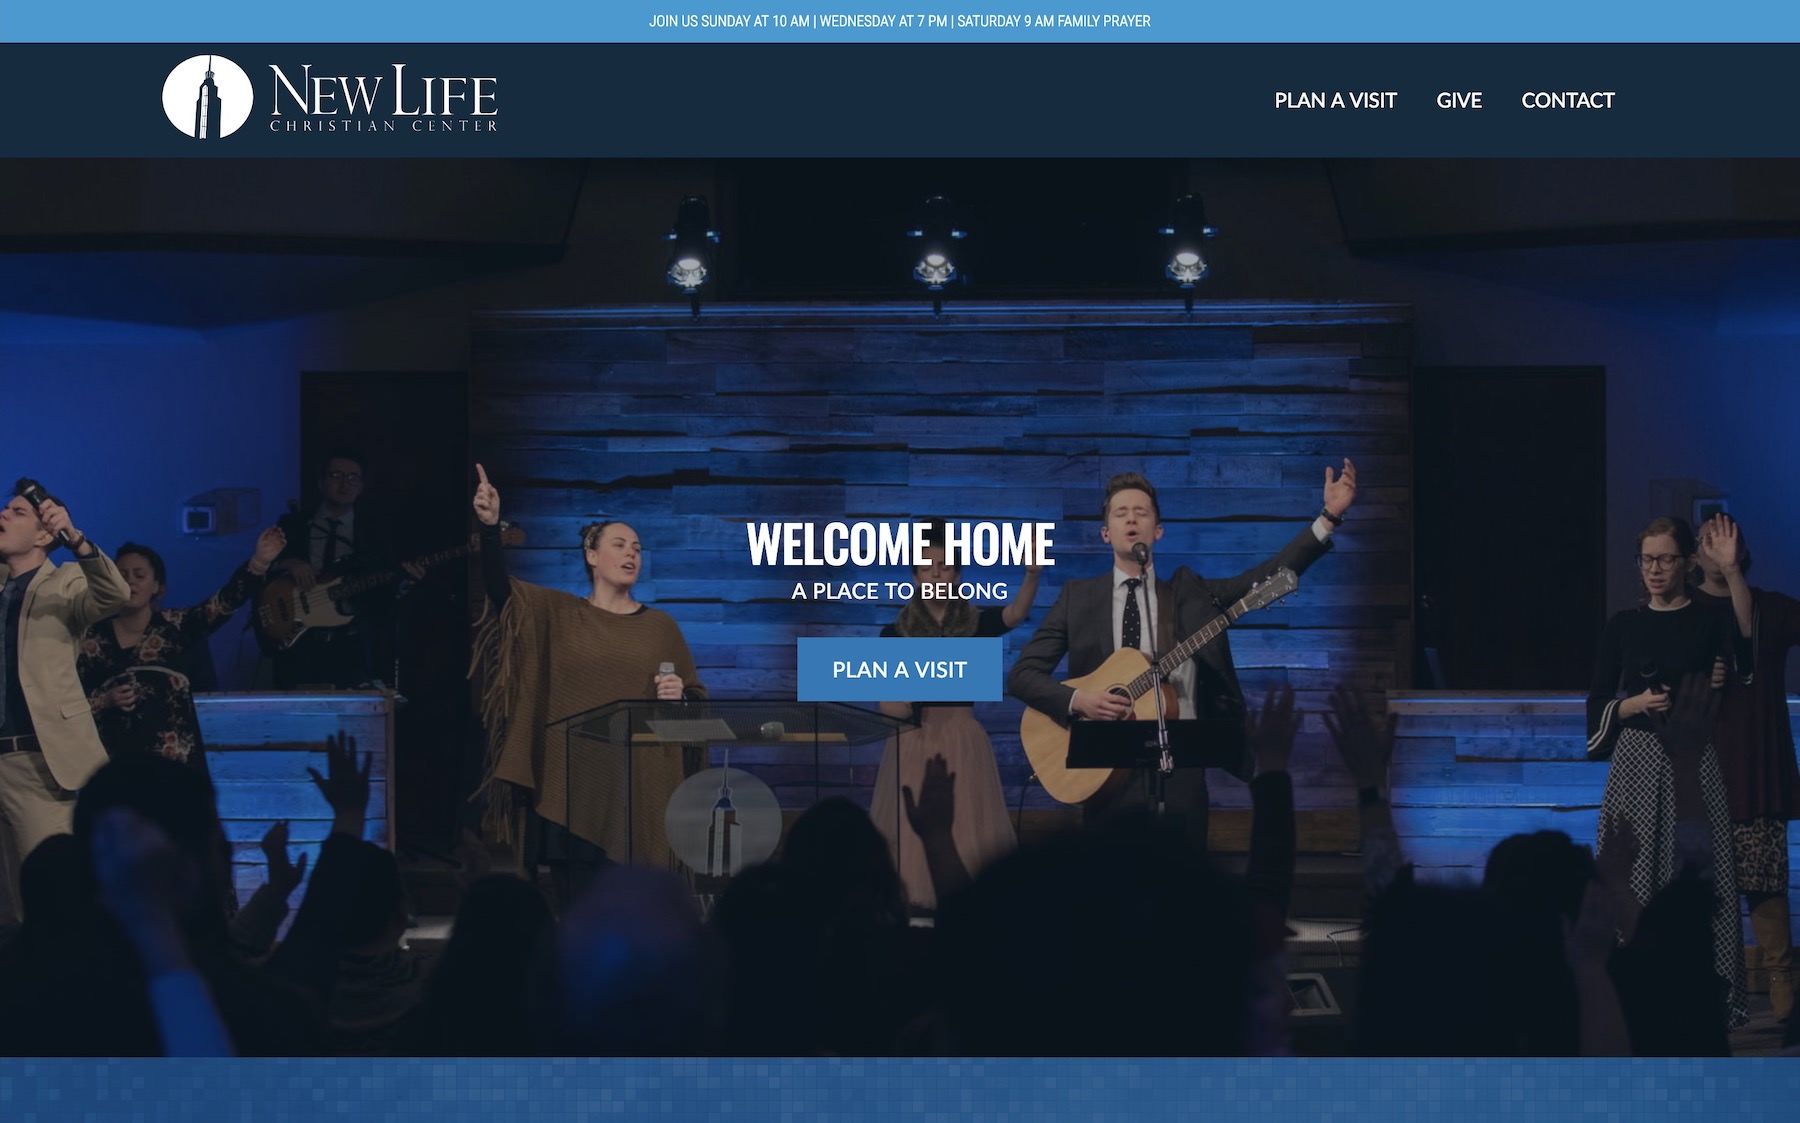 Church website Lancaster Ohio